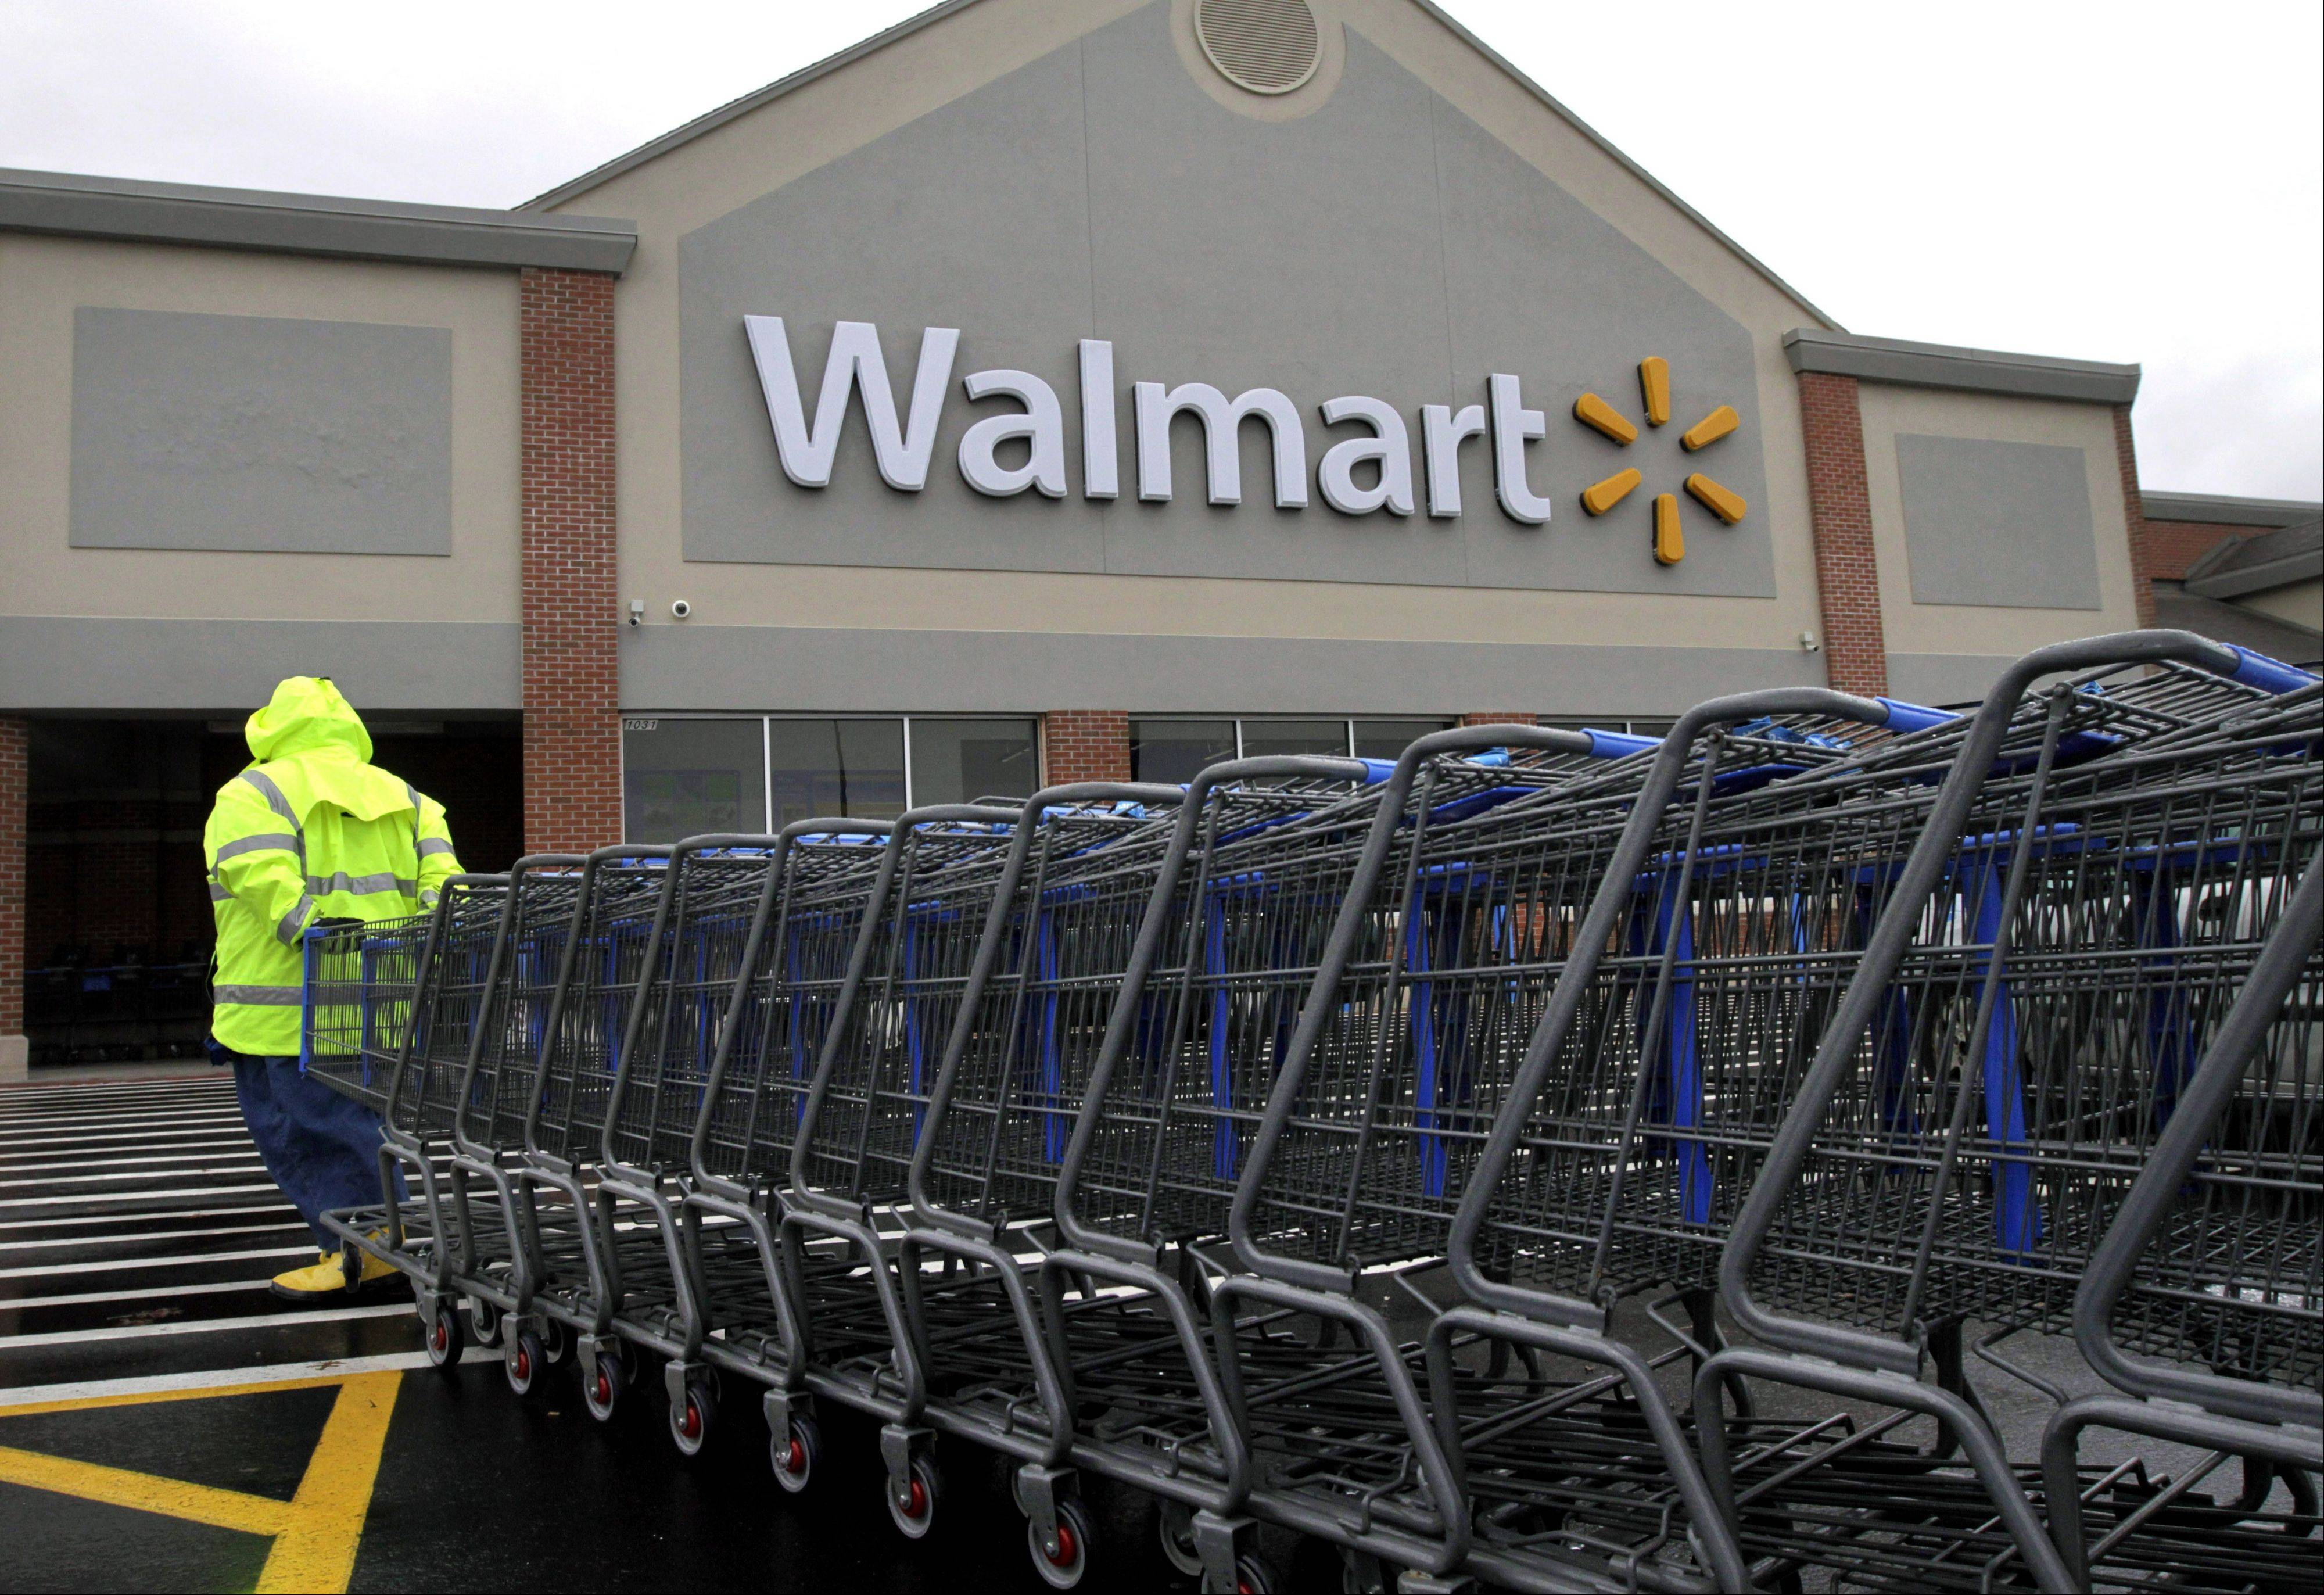 The world's biggest retailer, Wal-Mart Stores Inc., says it is likely that it will incur a loss from bribery probes into its operations in Mexico and other countries.